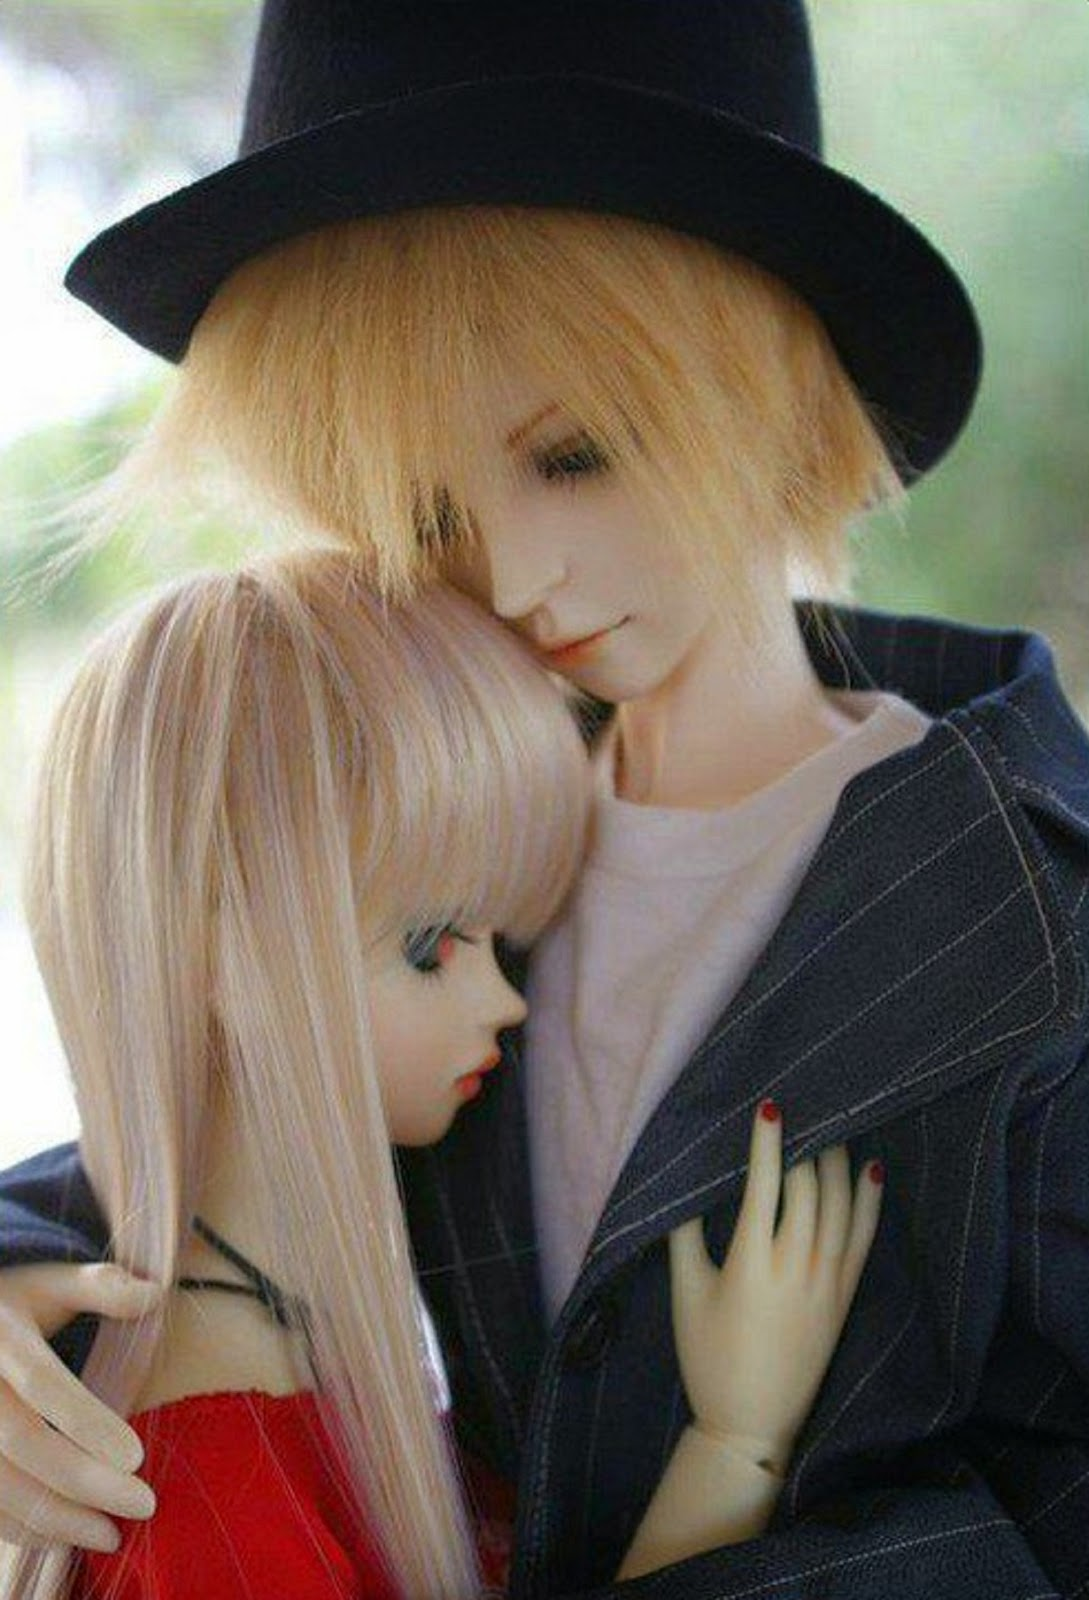 Pretty barbie doll couple wallpapers free download free - Cute barbie pic download ...